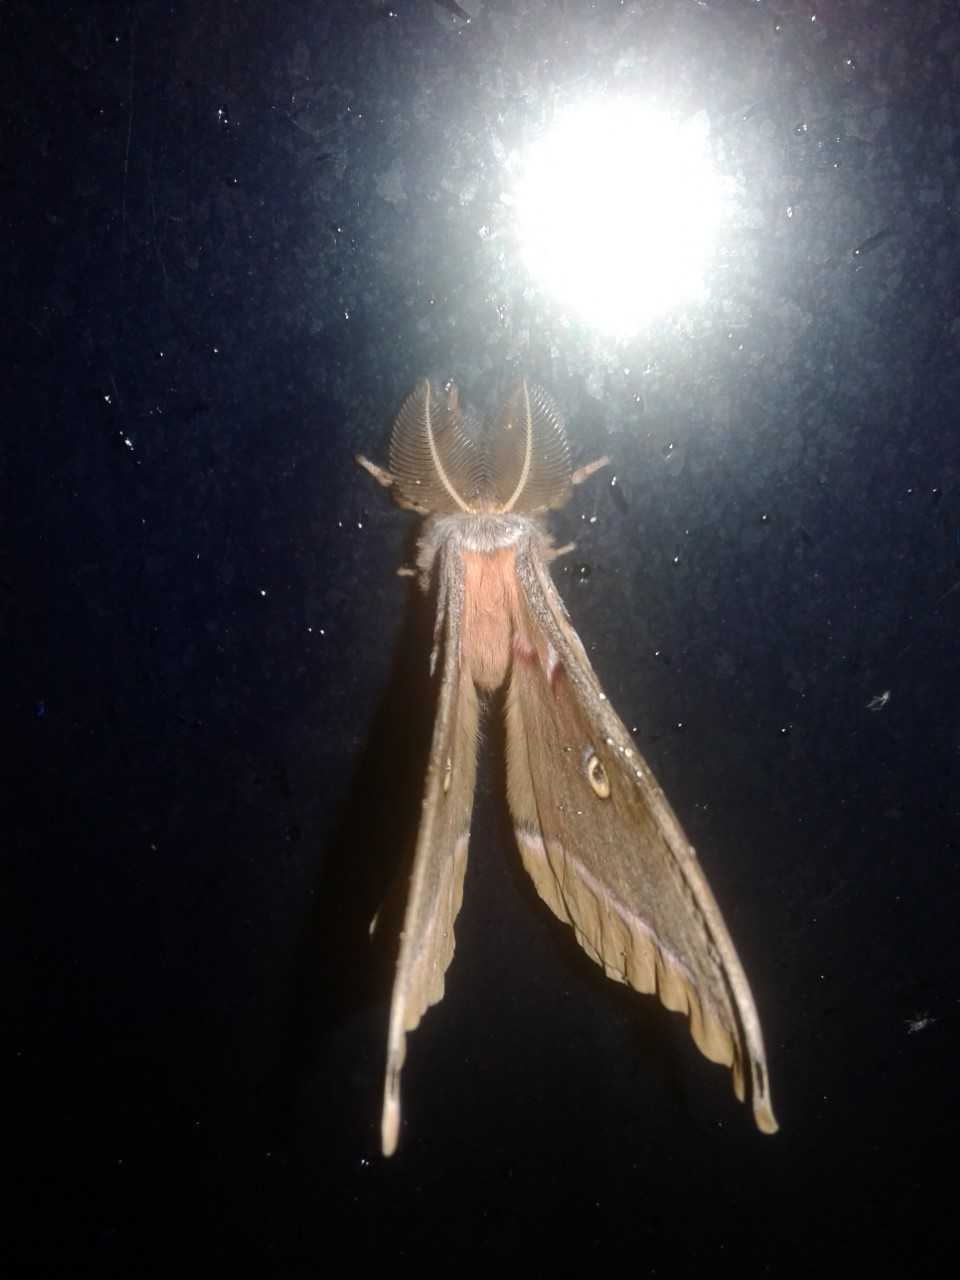 (1/2) A moth is seen on a dark night ... Photo: Adrian Marquez, nature, wildlife, animal, insect, moth